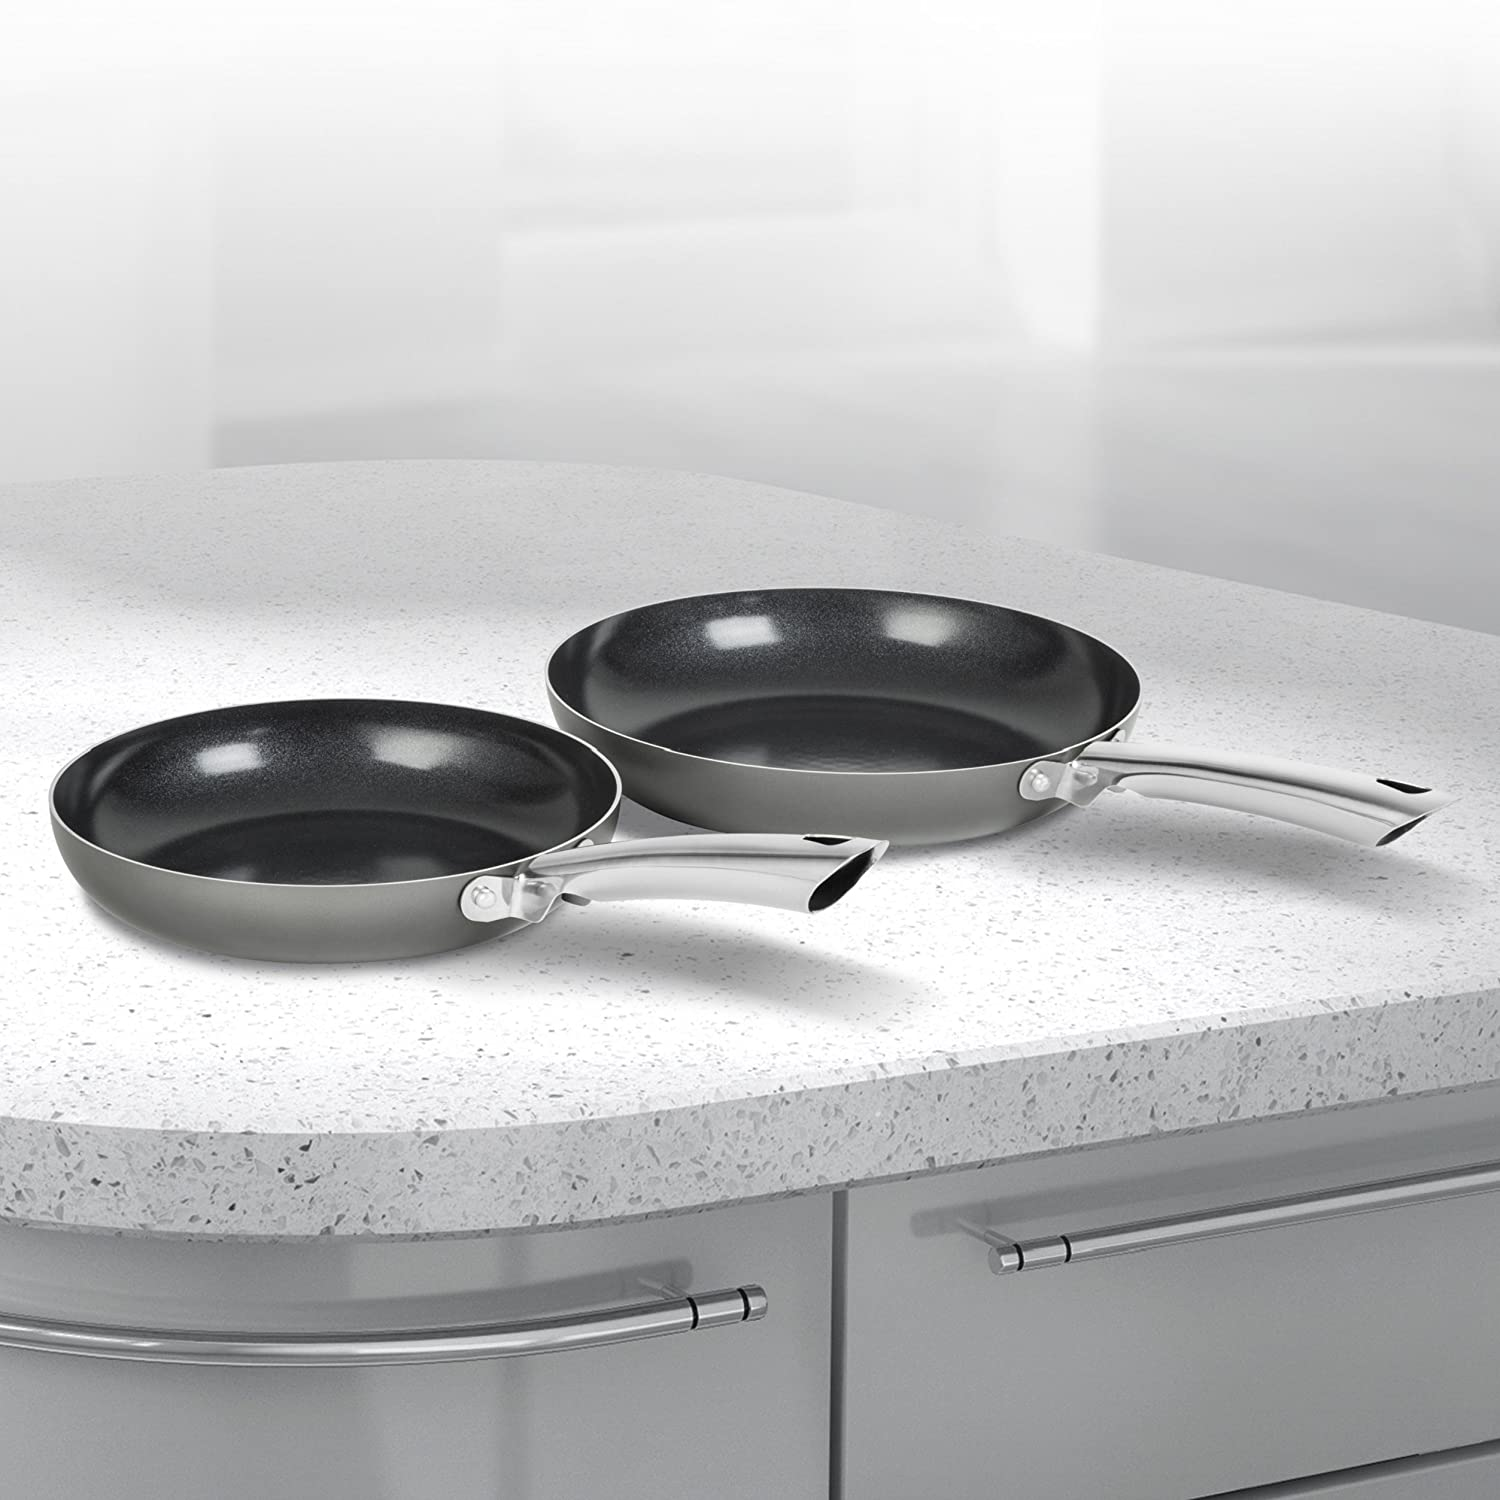 Morphy Richards Accents Frying Pan Set With Easy Clean Non Stick Ceramic Coating, Easy Clean Non Stick Ceramic Coating, Titanium, 2 Piece 973015